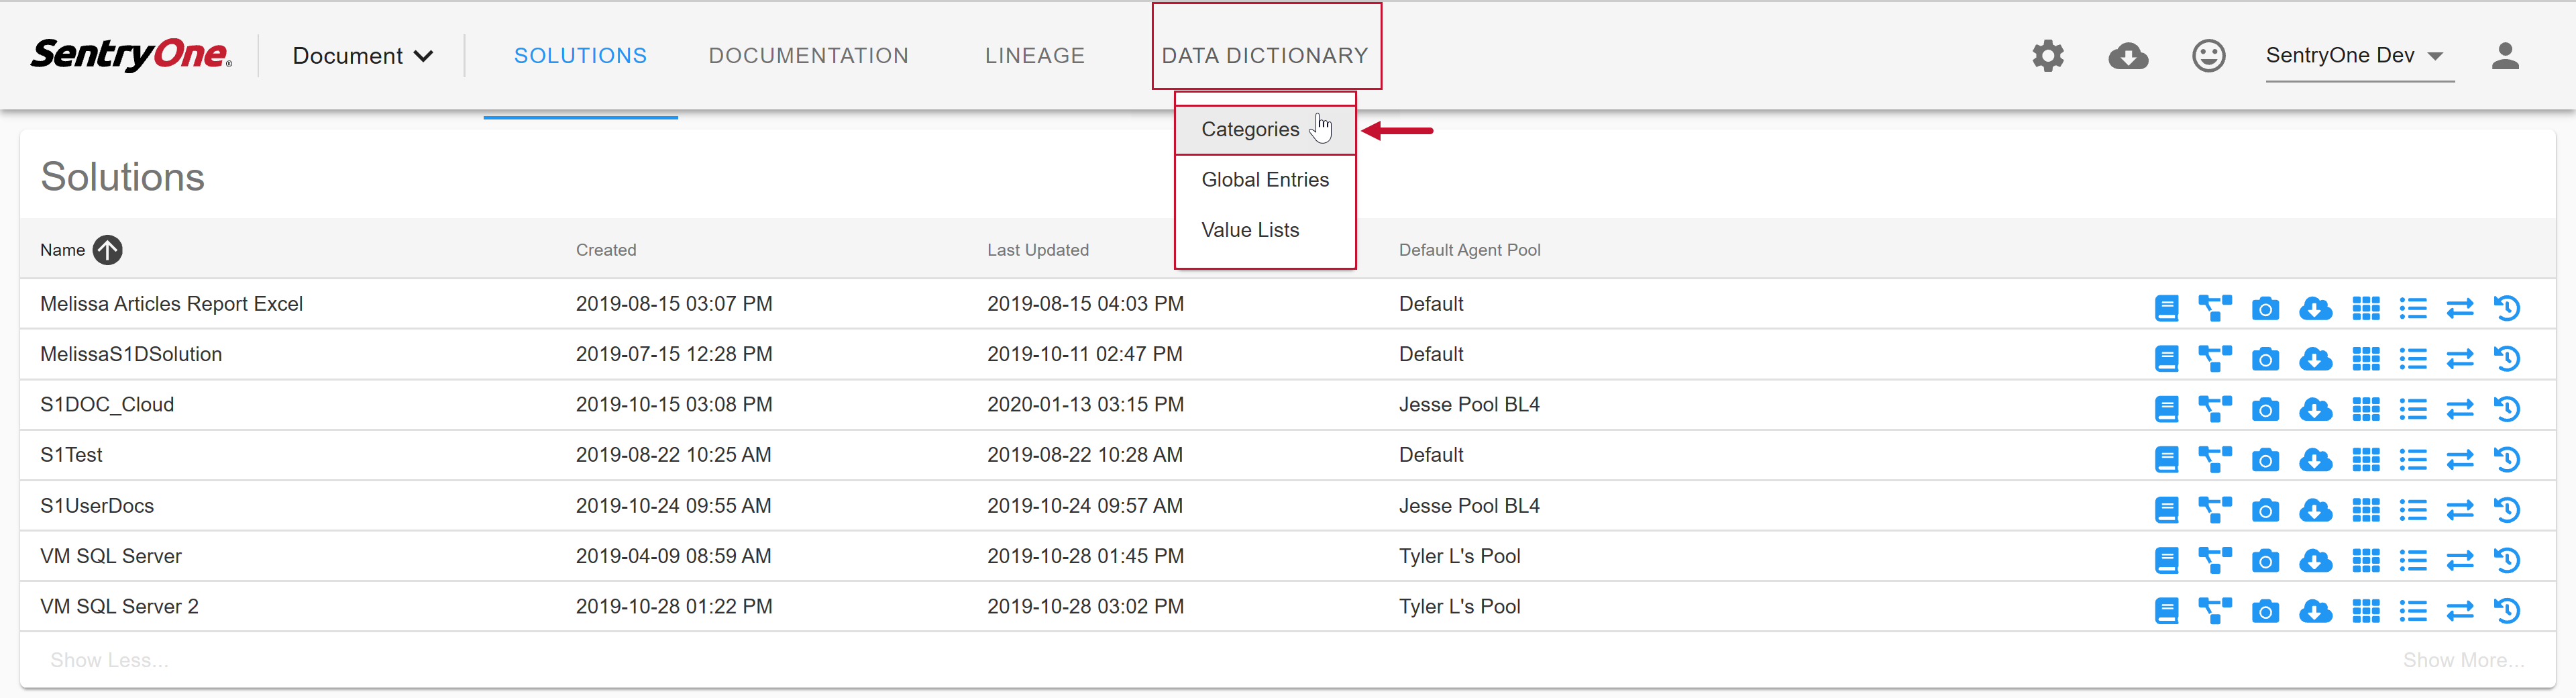 SentryOne Document select Data Dictionary Categories